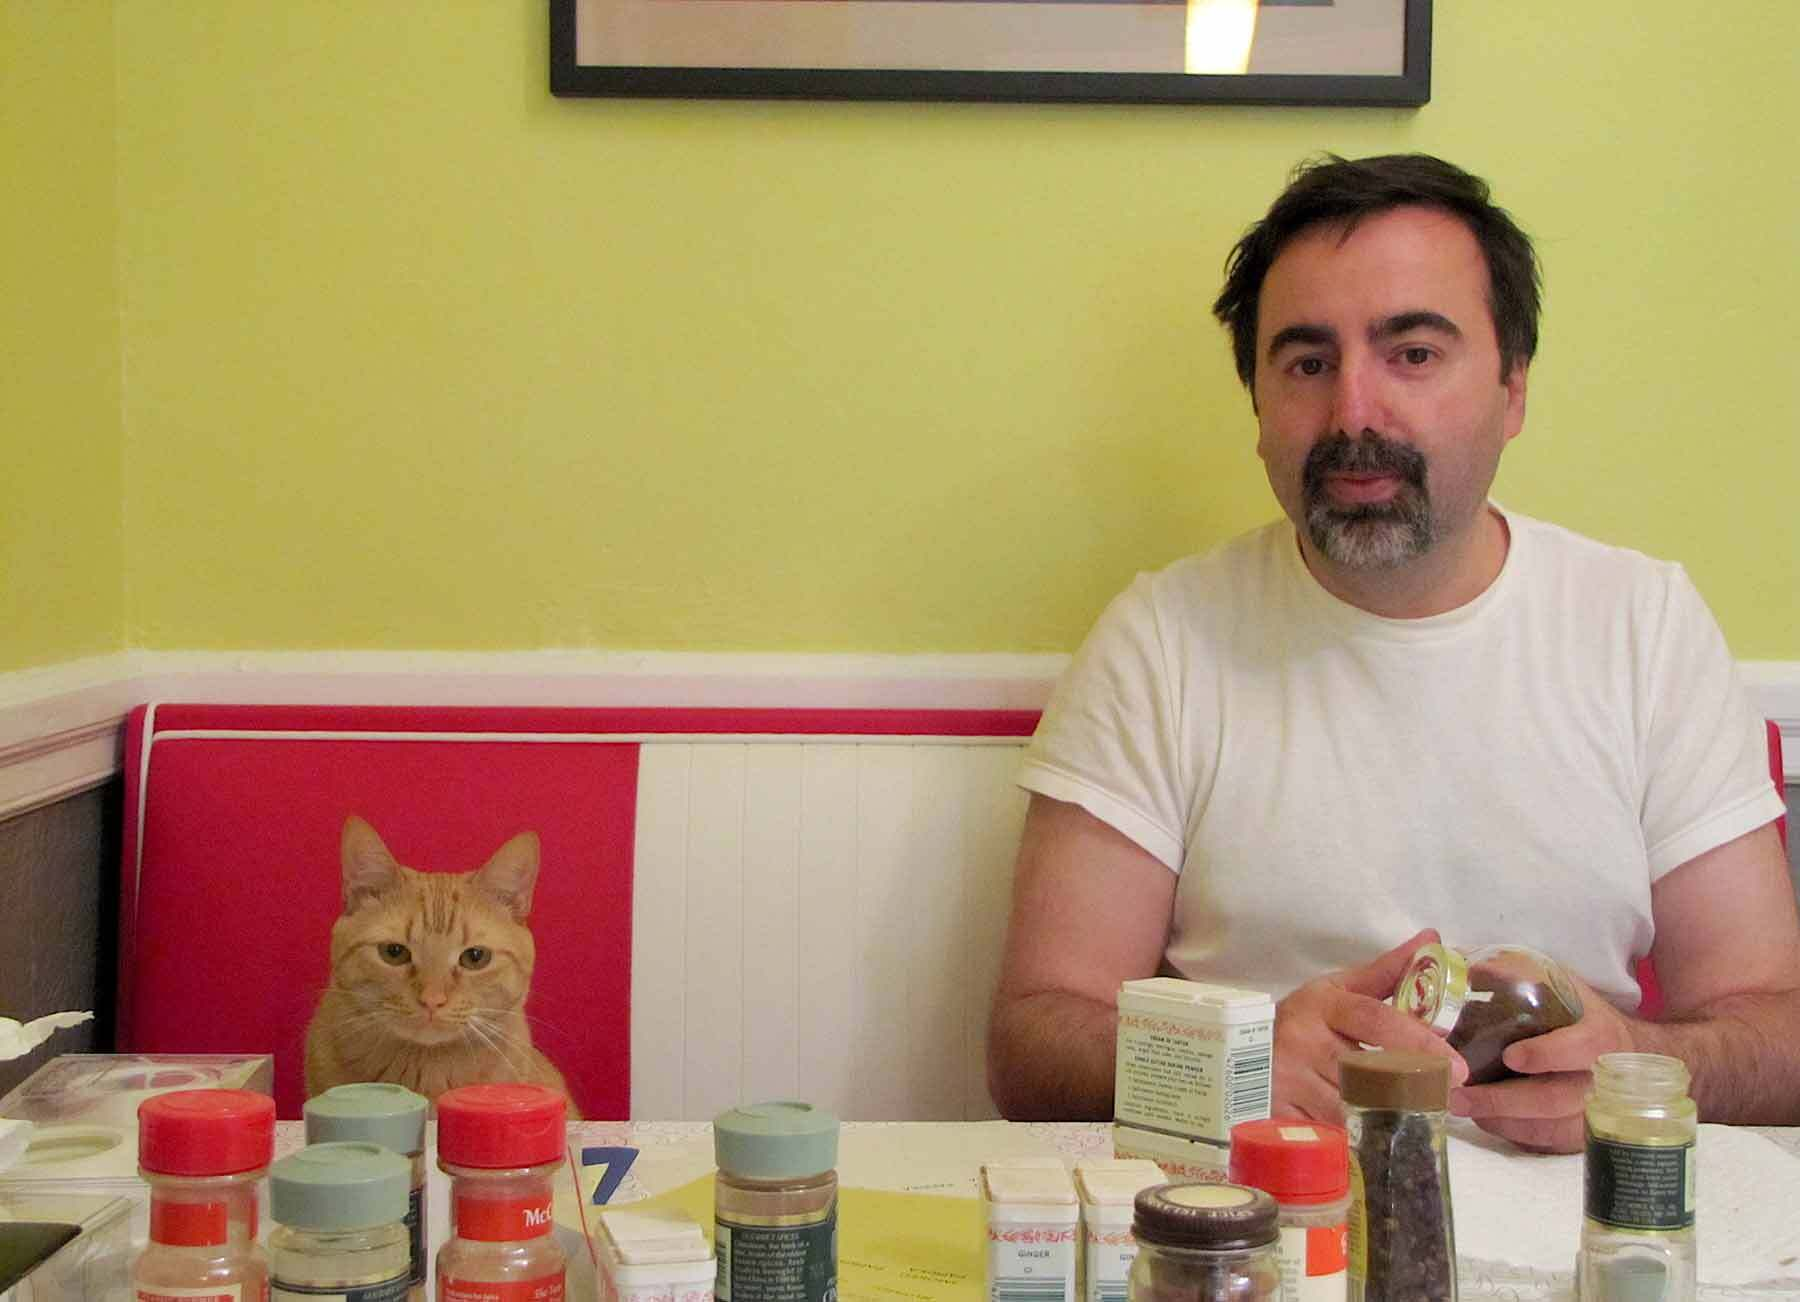 Abner the orange cat seated on a red bench at a table filled with spice jars, next to Victor.